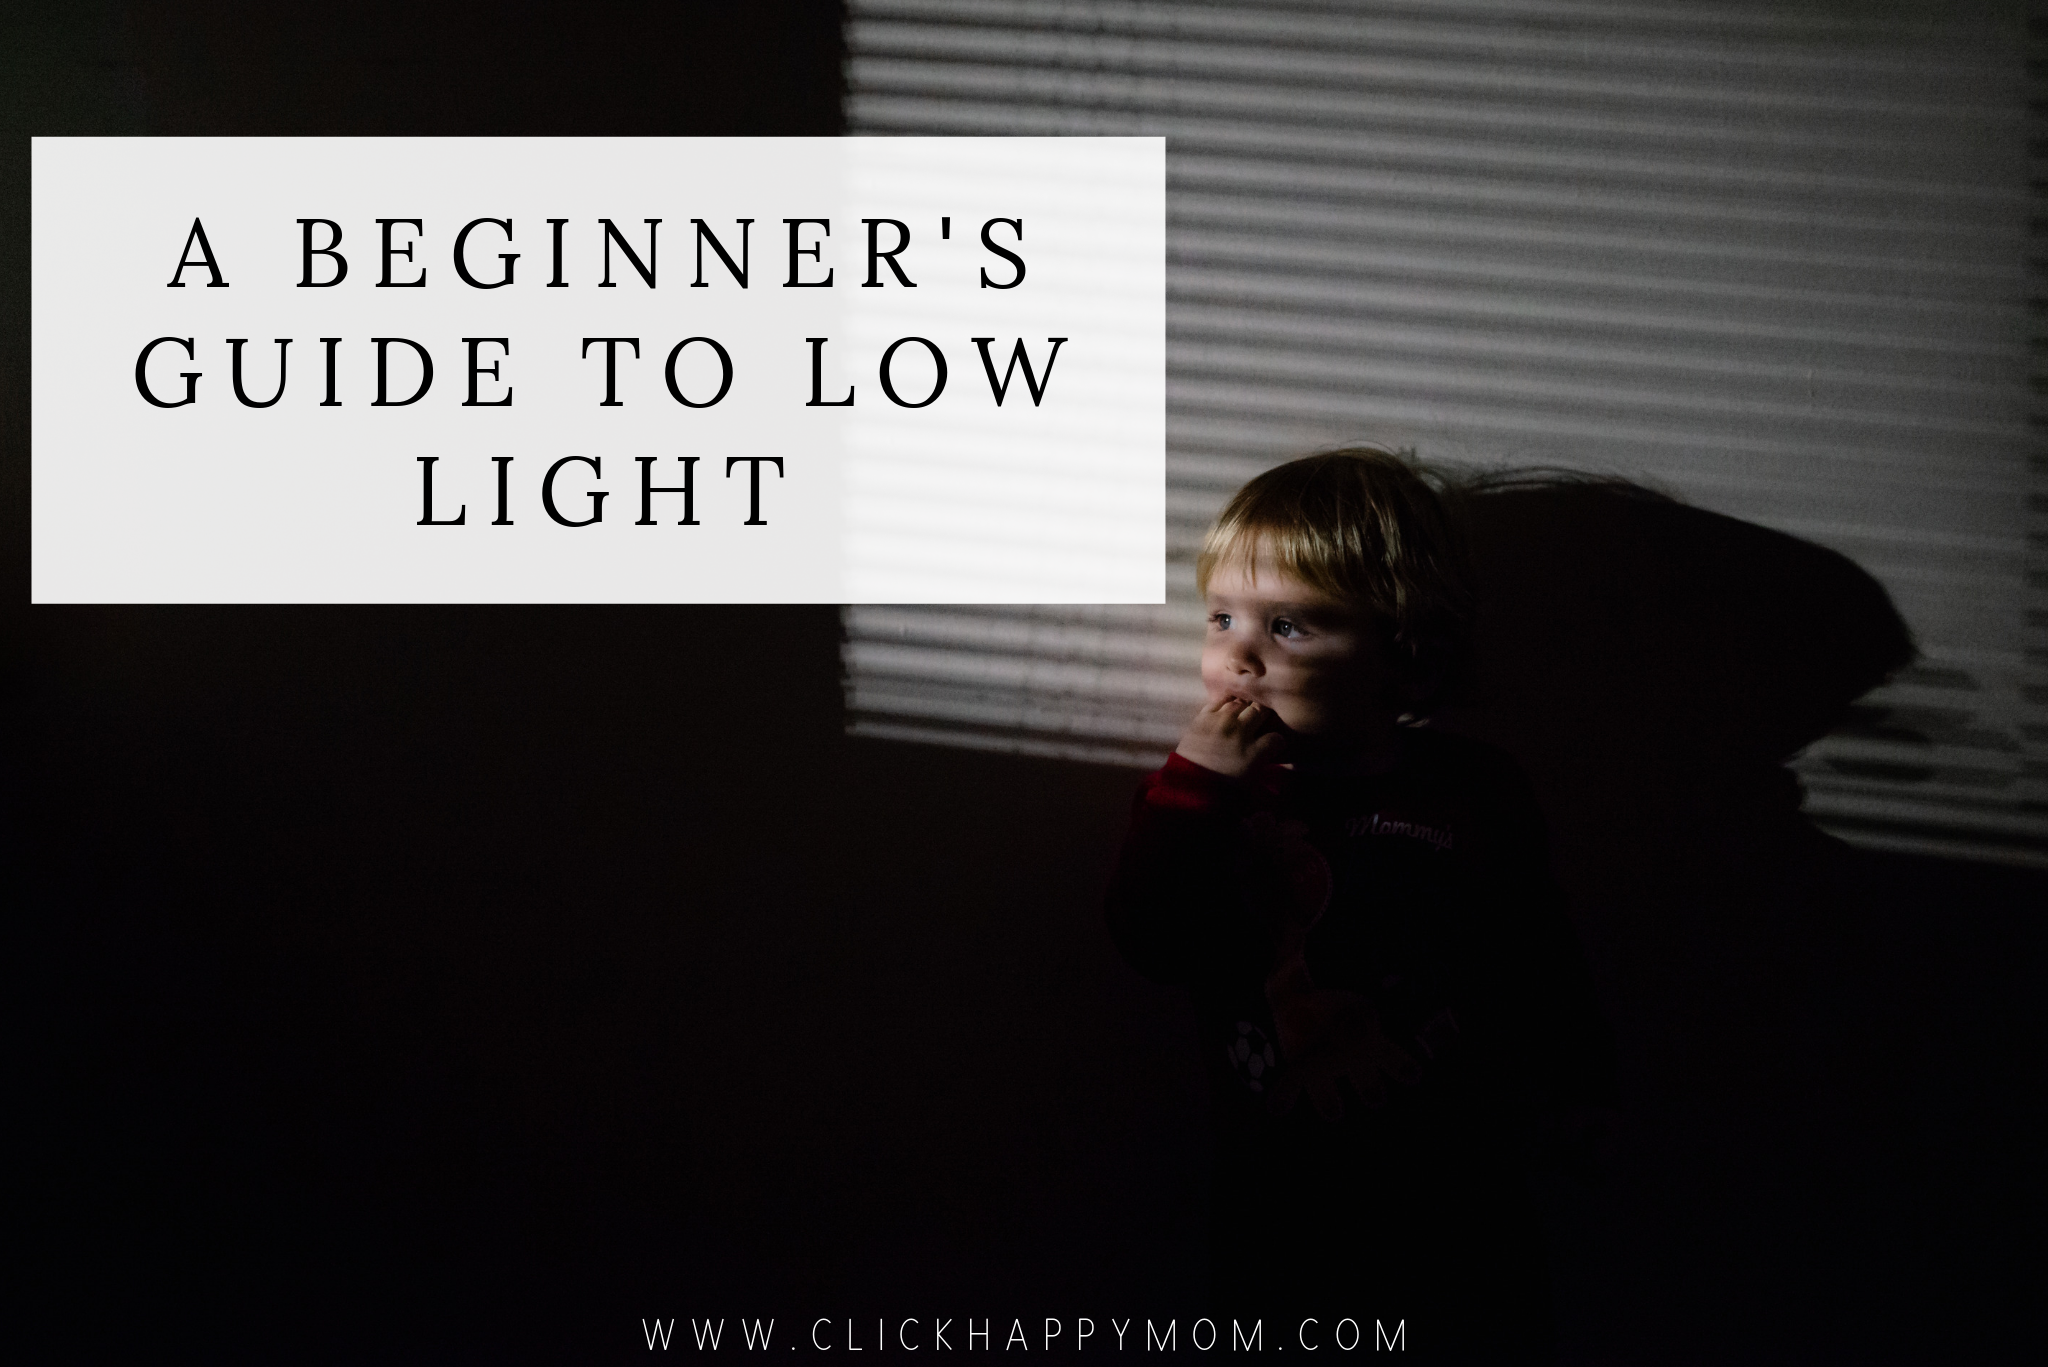 A Beginner's Guide to Low Light